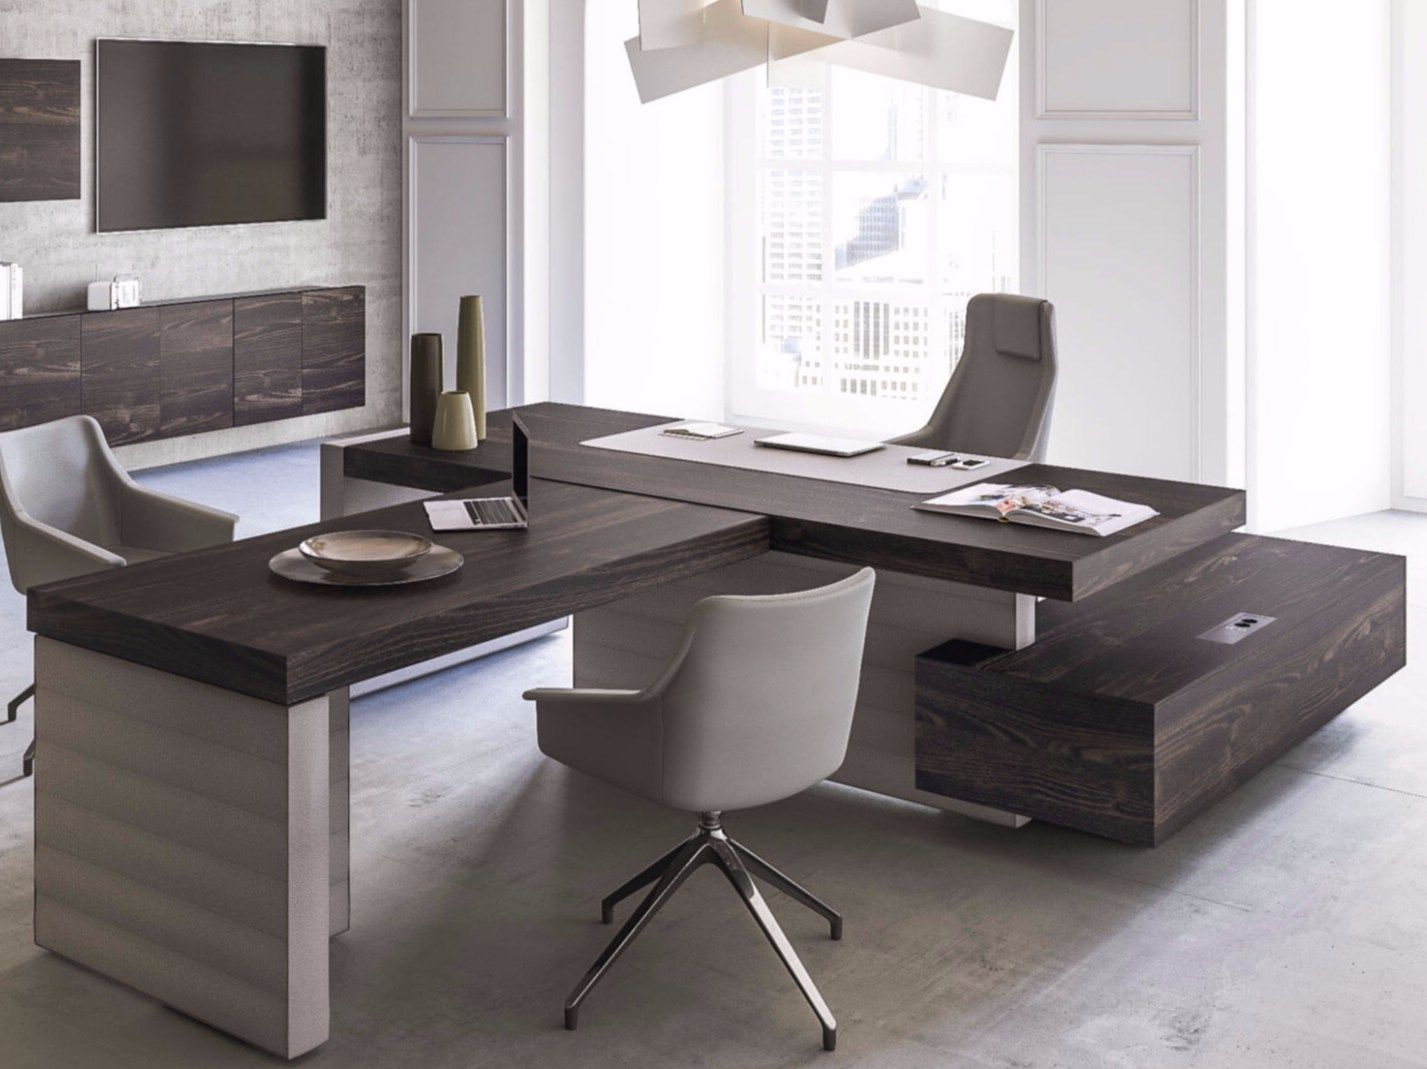 Sectional office desk with shelves JERA : sectional office desk - Sectionals, Sofas & Couches